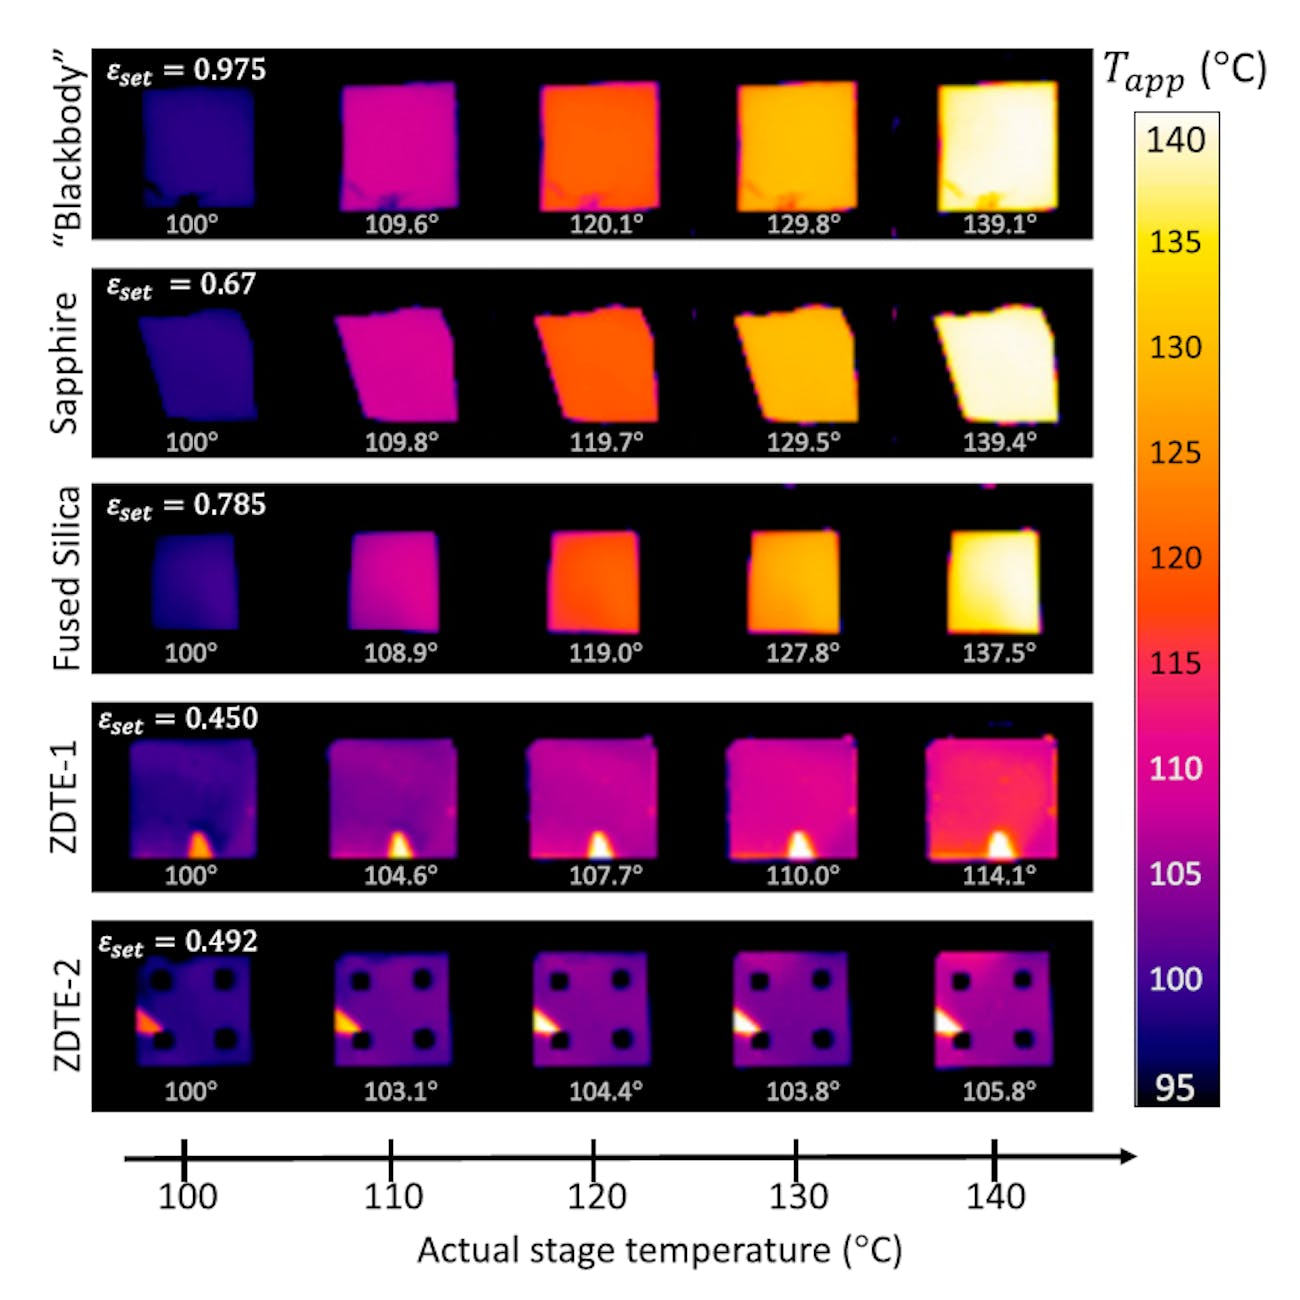 Heat emissivity of untreated sapphire (second from top) compared to emissivity of treated sapphire (bottom two rows).